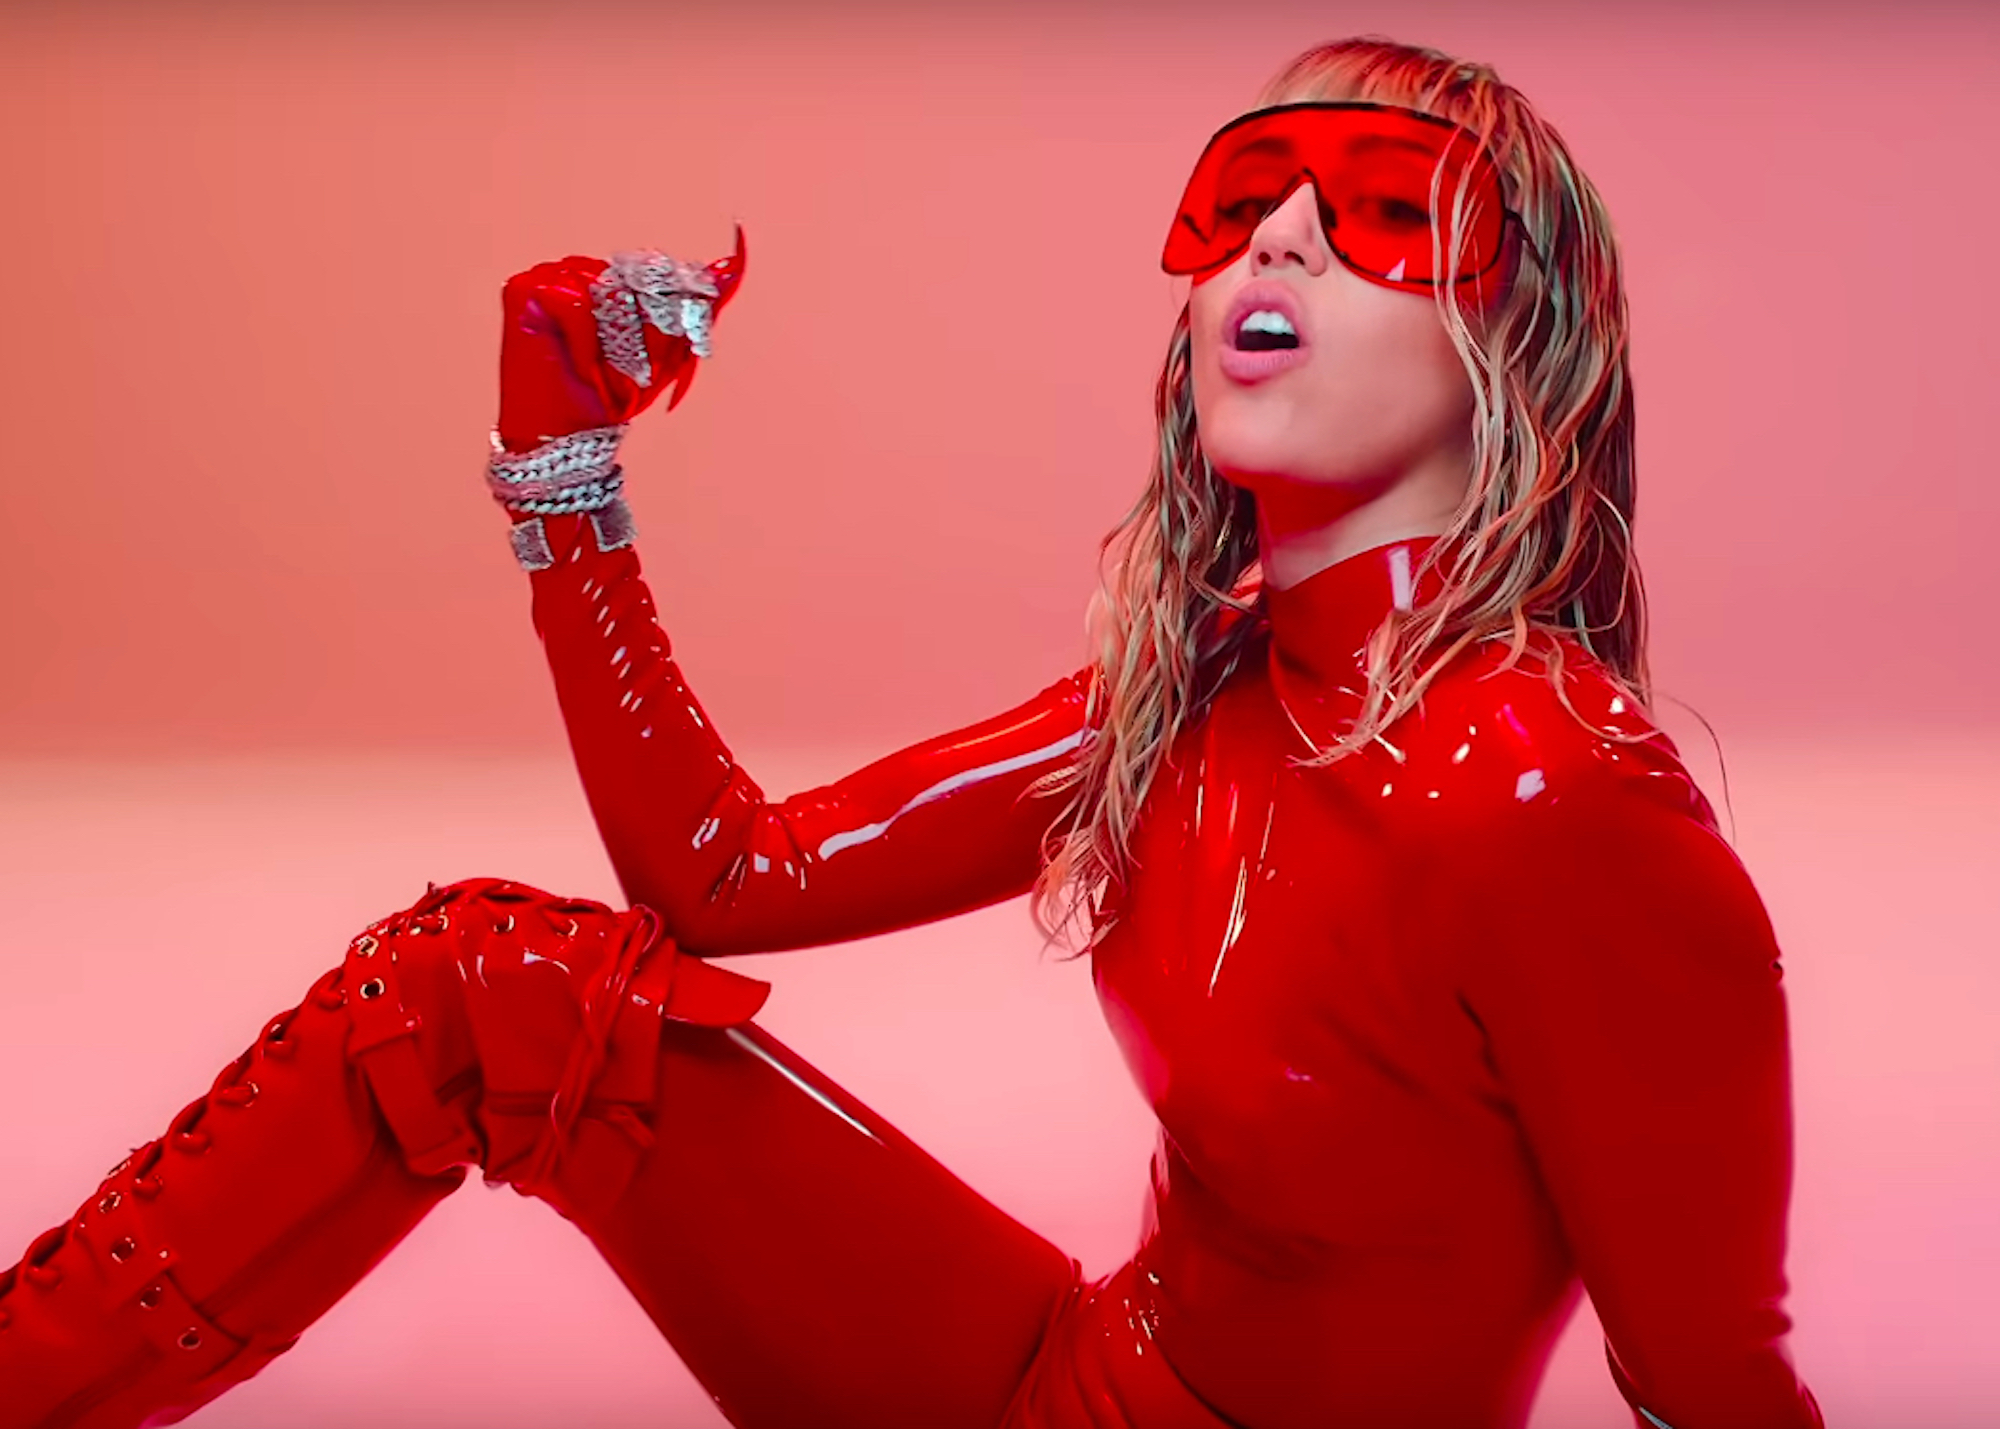 Mother's Daughter music video with Miley Cyrus in pink latex